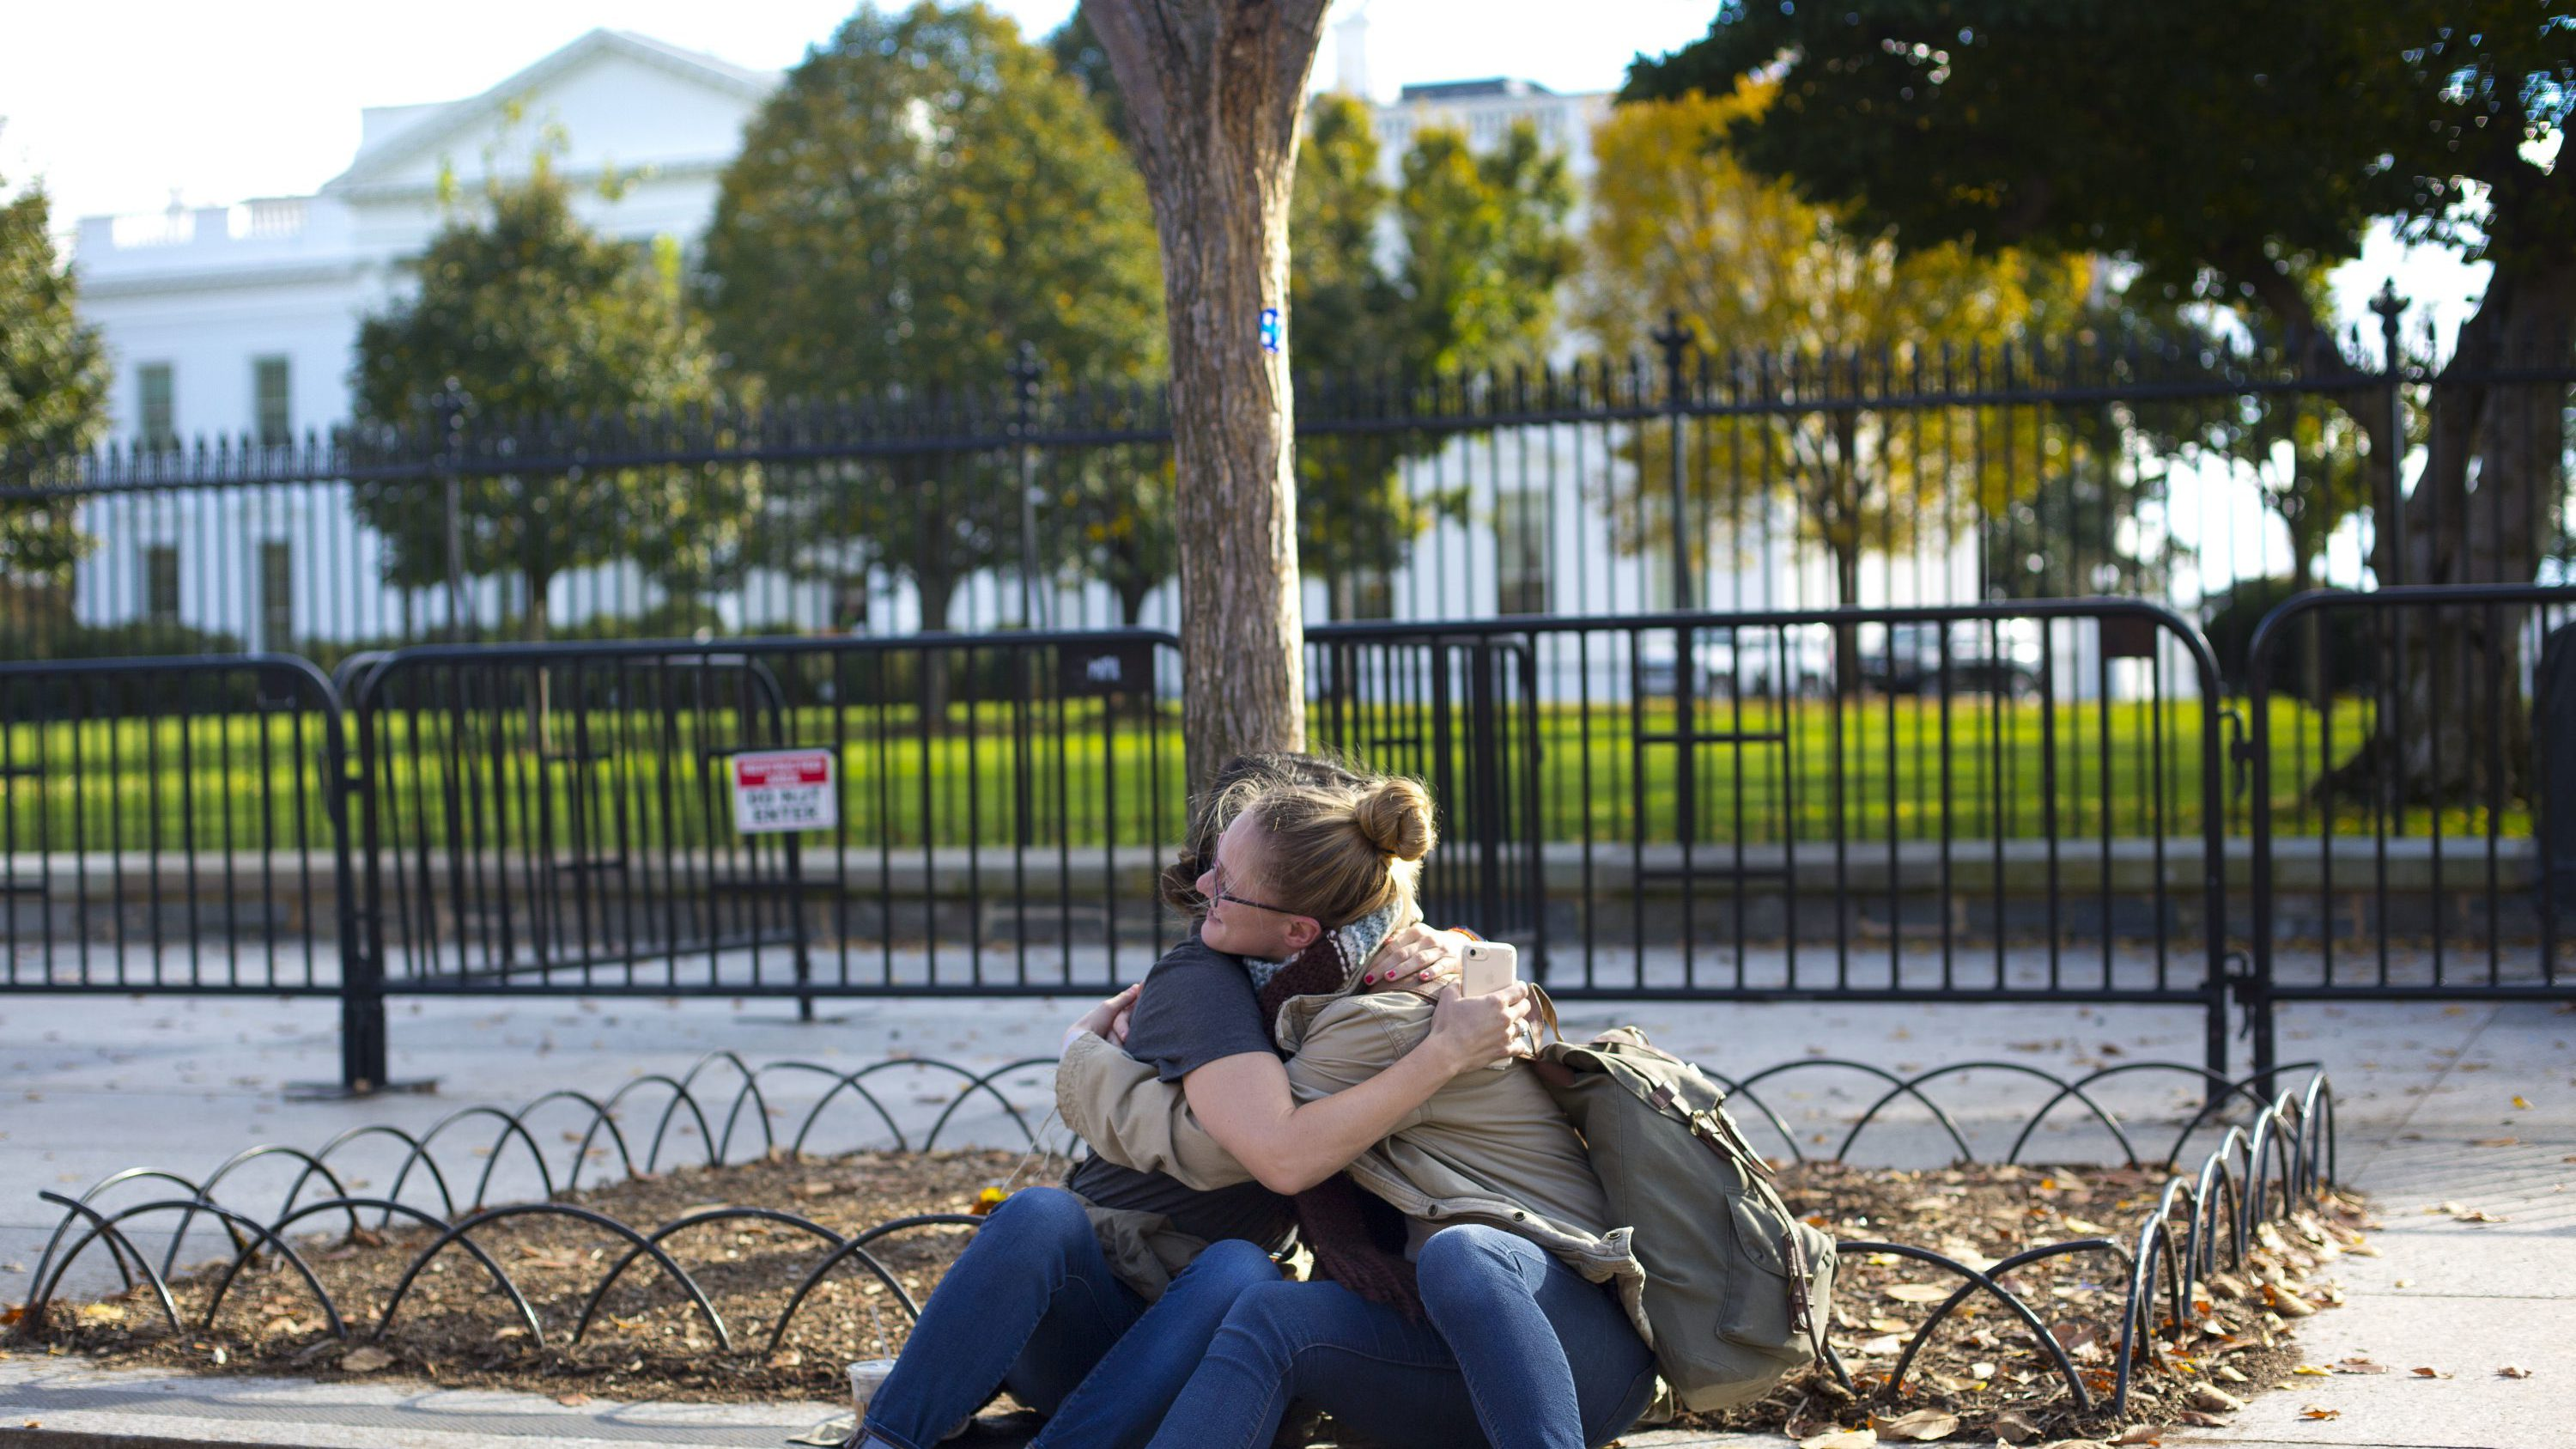 Jennie Armstrong, left, and Krister Cheriegate hug on the sidewalk in front of the White House in Washington, Wednesday, Nov. 9, 2016. The two women don't know each other but when Cheriegate saw Armstrong getting emotional she ask her is she need a hug. Donald Trump claimed his place as 45th president, an astonishing victory for the celebrity businessman and political novice who capitalized on voters' economic anxieties, took advantage of racial tensions and overcame a string of sexual assault allegations on his way to the White House.